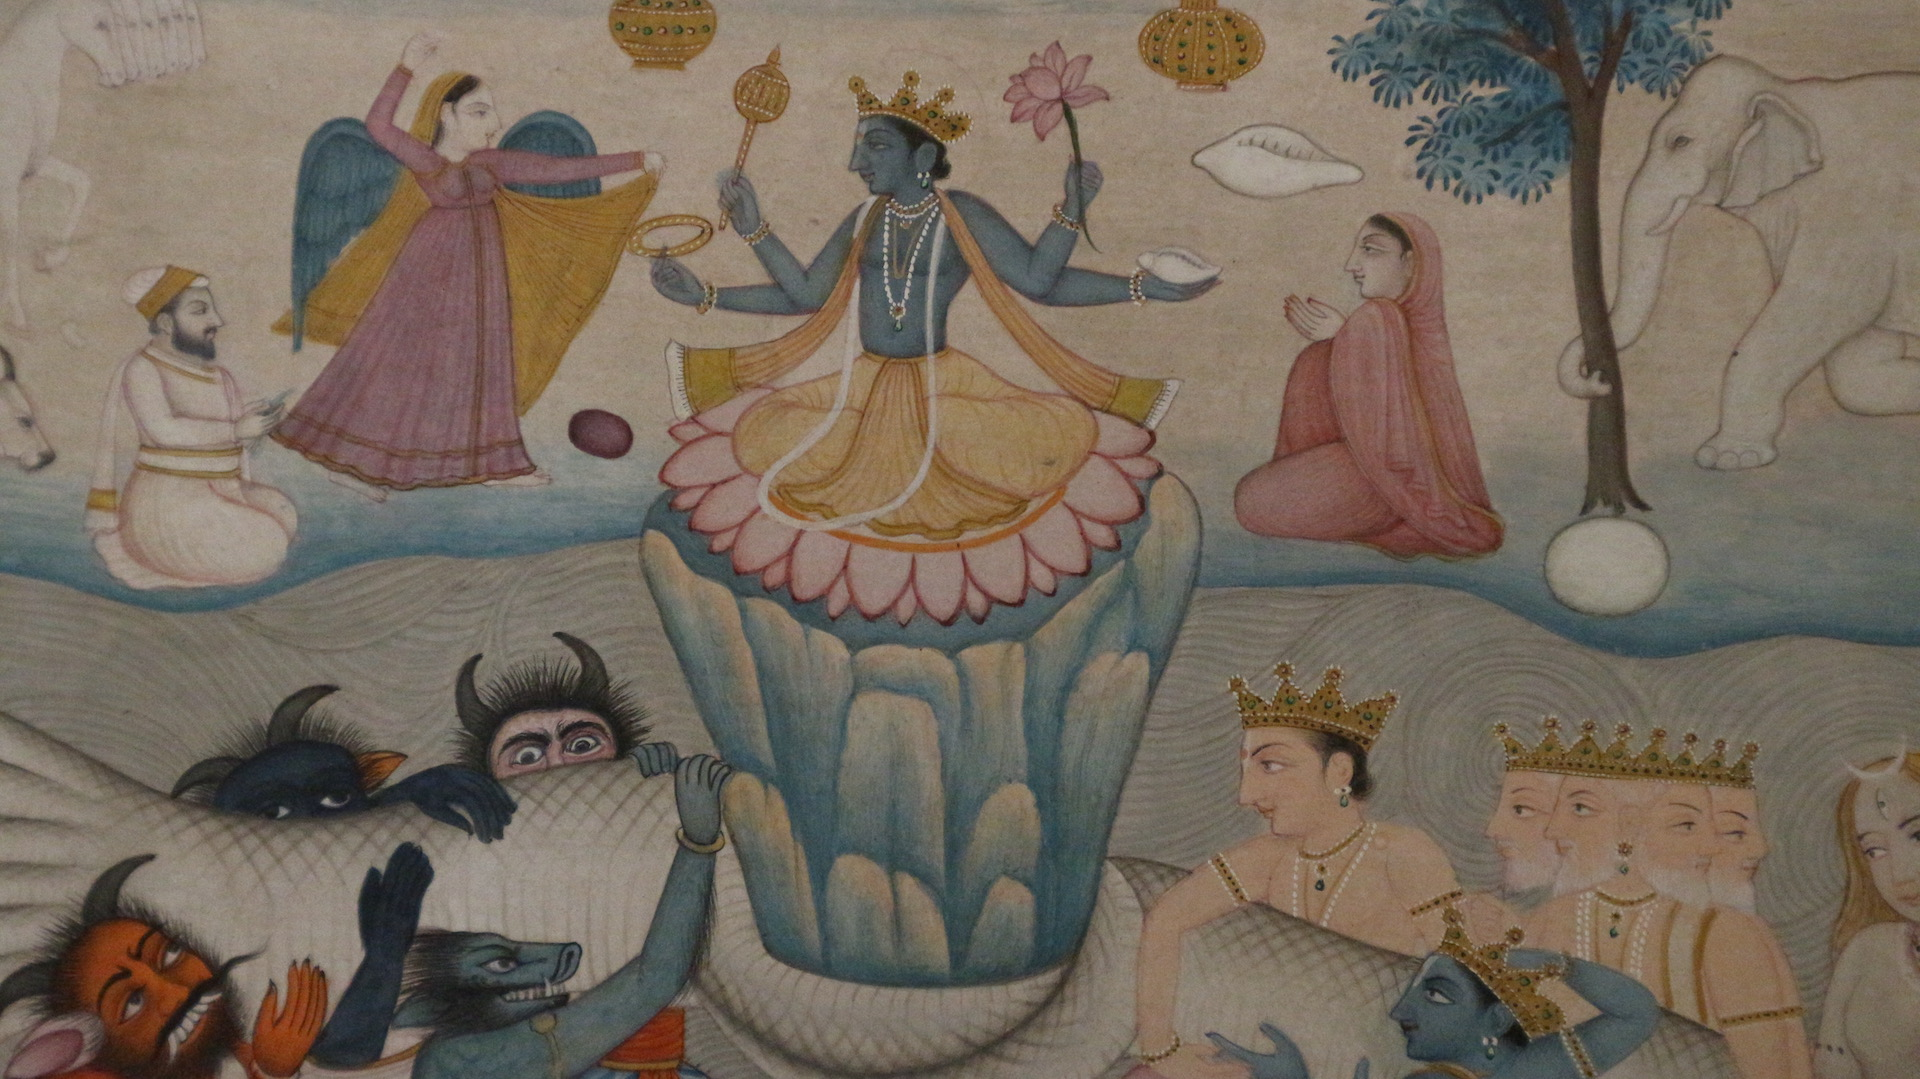 RITA DIXIT INDIAN MINIATURES The Churning of the Ocean, (sanskrit Samudra Manthan) is one of the most iconic episodes in Indian mythology. A timeless image from the Bhagvata Puranas captured in miniature. This example is from Kangra School mid/ late 19th century.